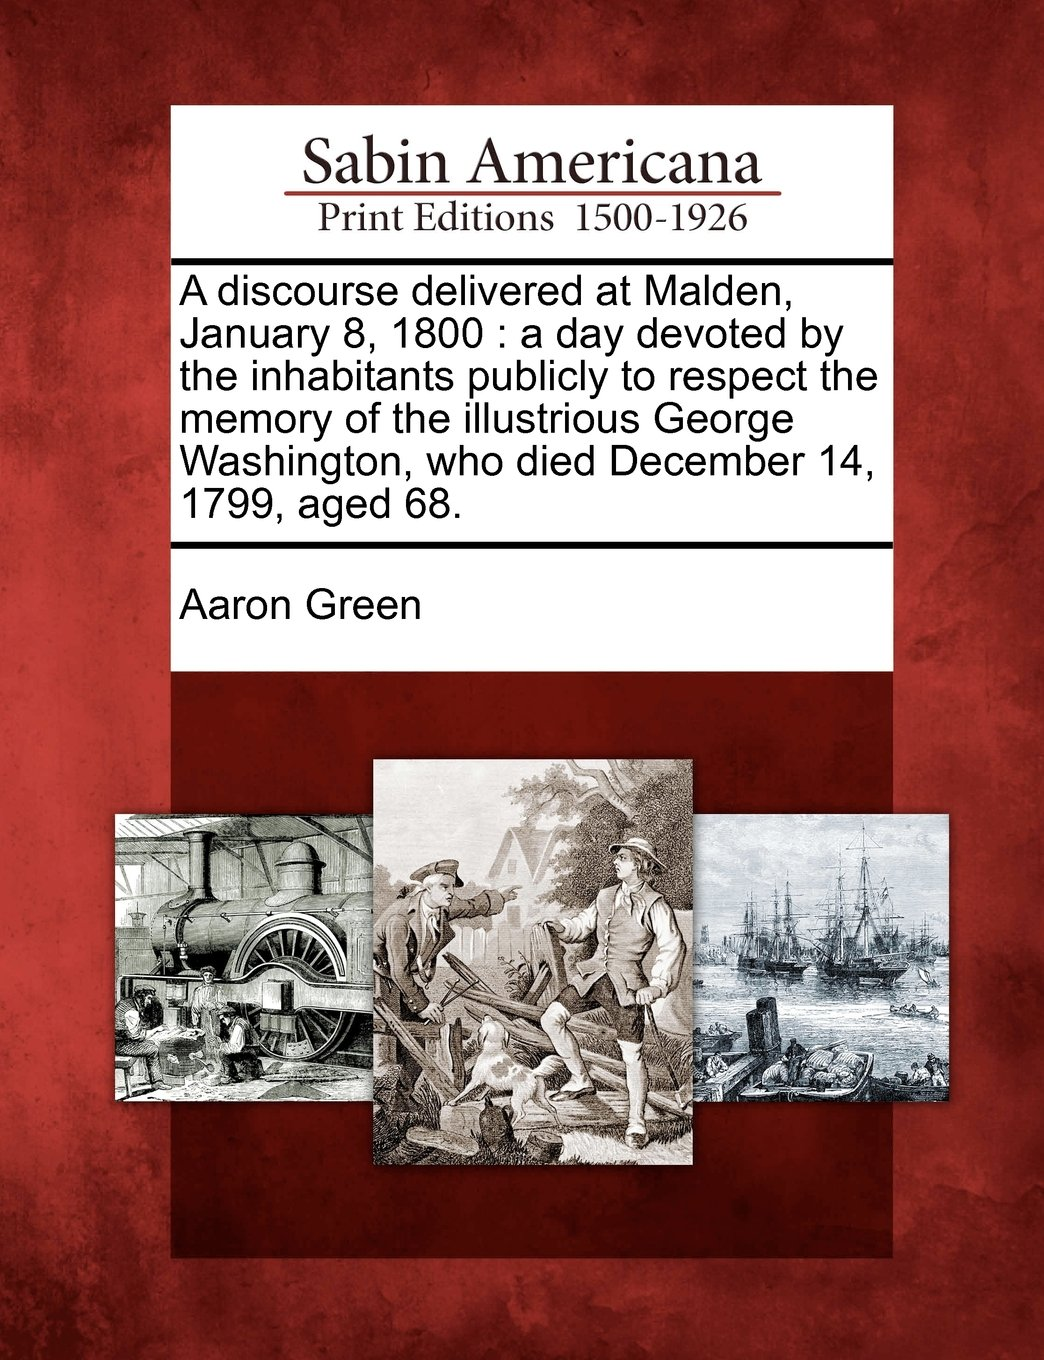 A discourse delivered at Malden, January 8, 1800: a day devoted by the inhabitants publicly to respect the memory of the illustrious George Washington, who died December 14, 1799, aged 68. PDF